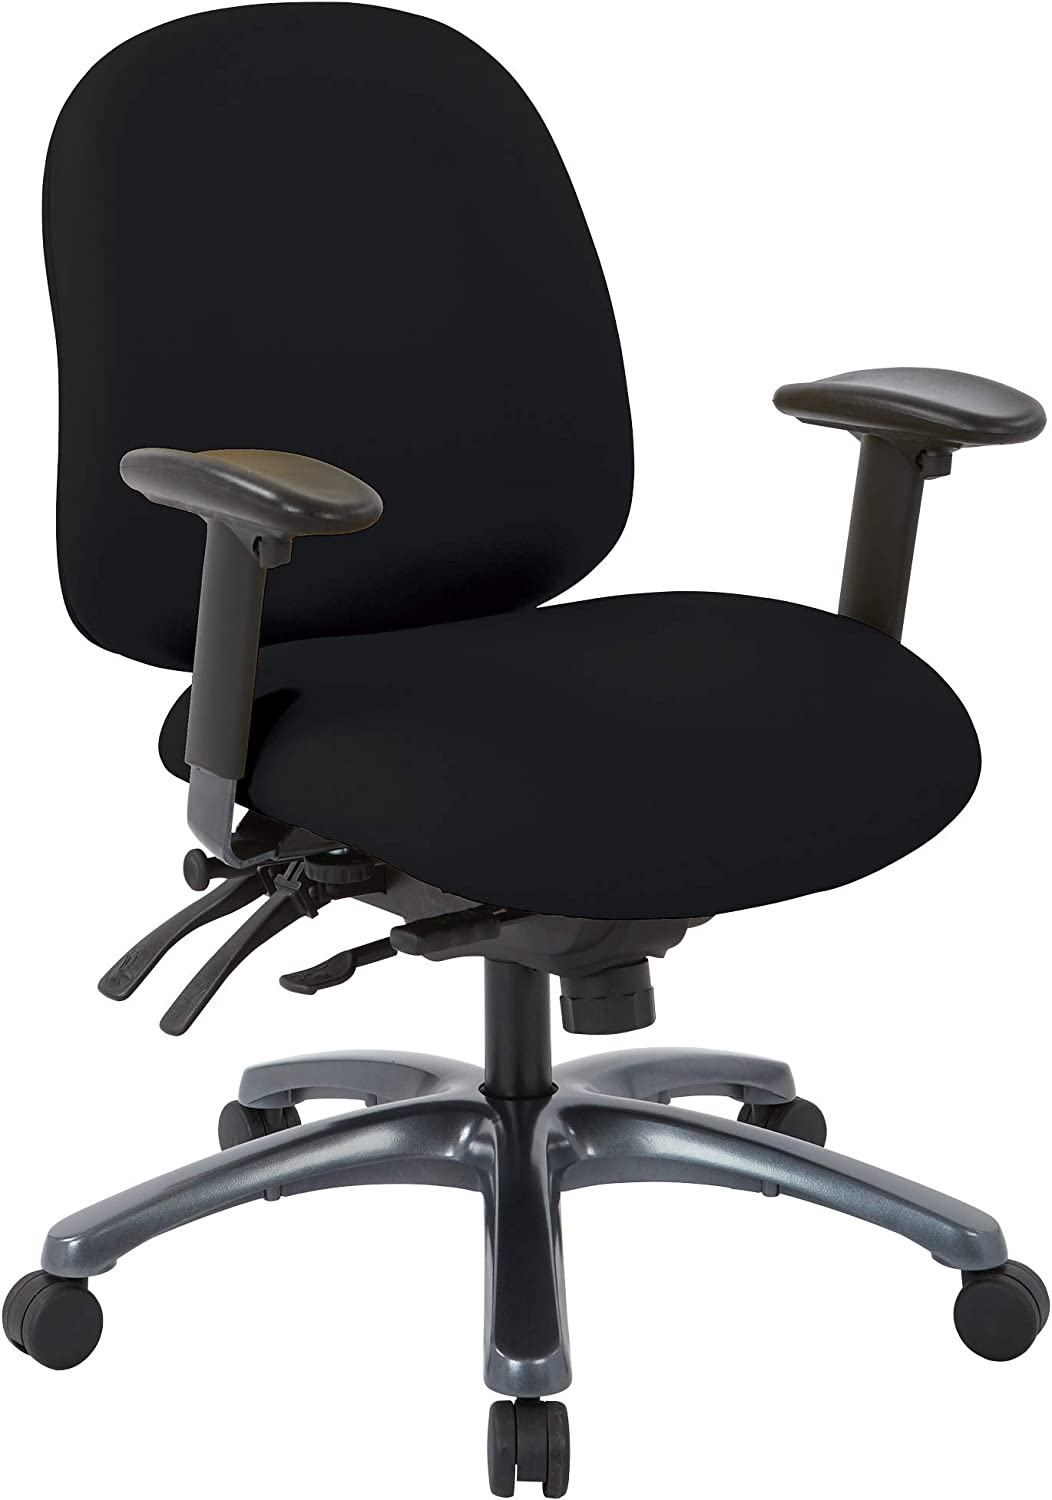 Office Star 8500 Series Multi-Function Mid Back Executive Ergonomic Office Chair with Seat Slider and Titanium Finish Base, Dillon Black Fabric